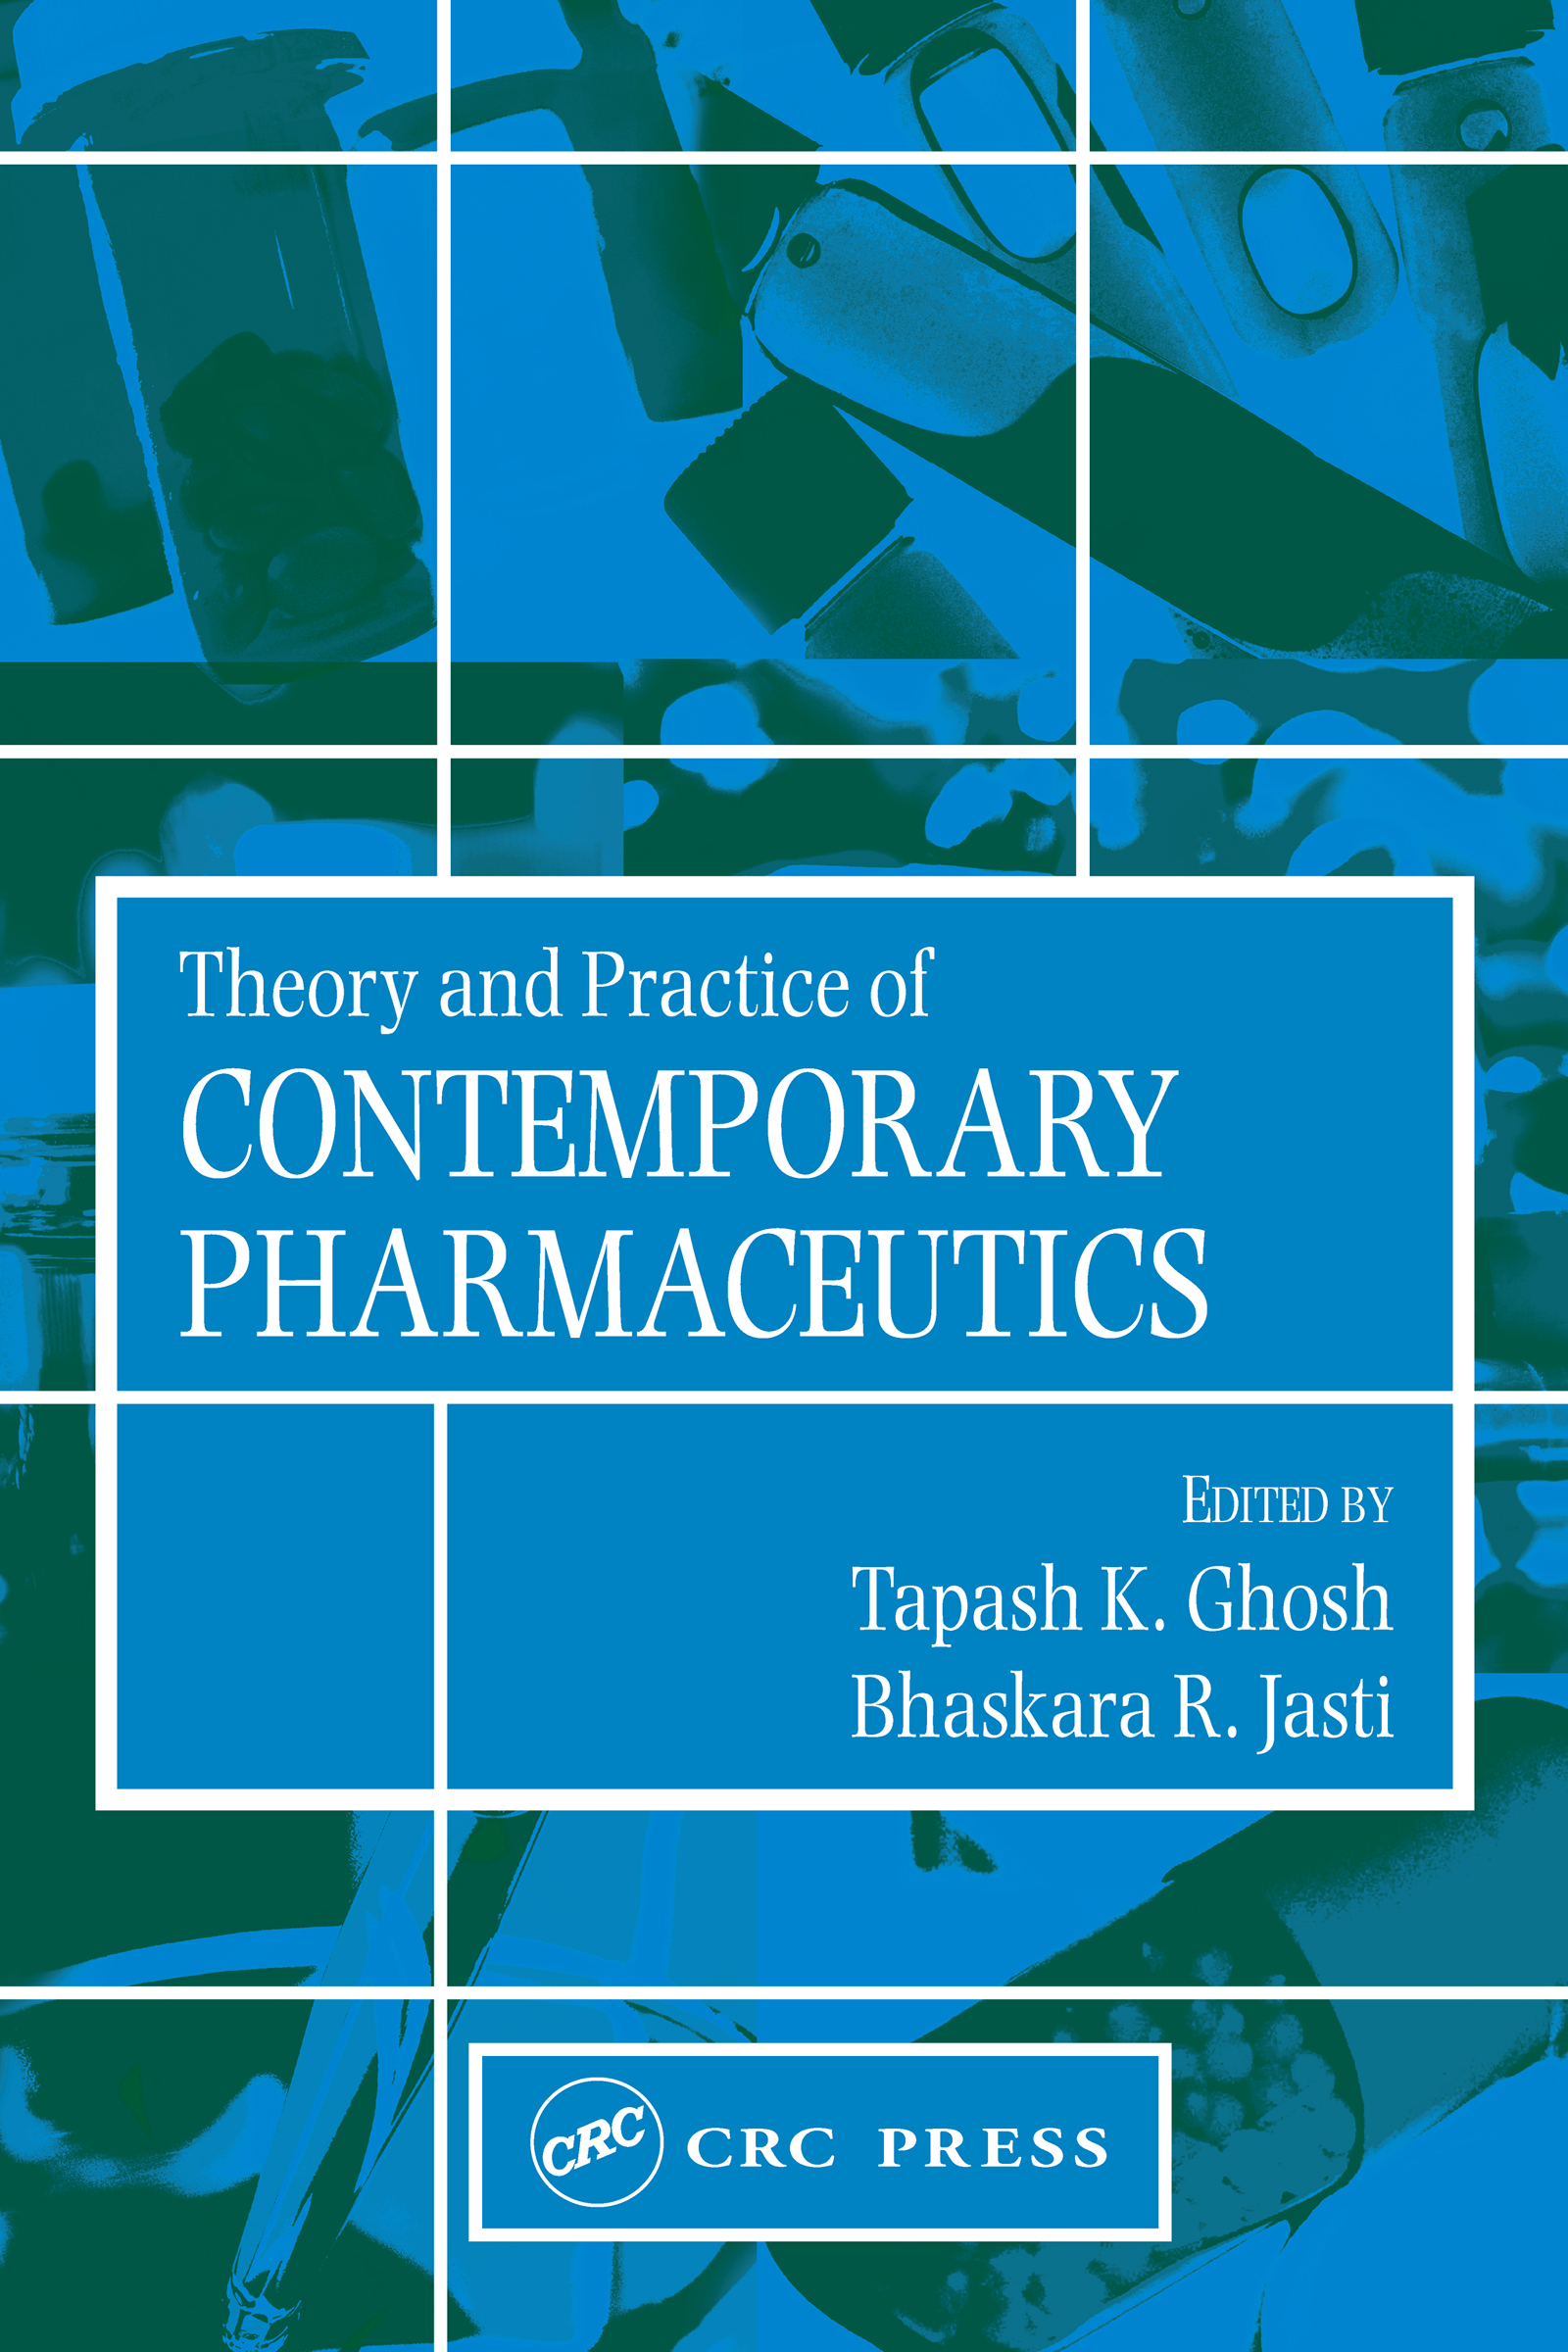 Theory and Practice of Contemporary Pharmaceutics